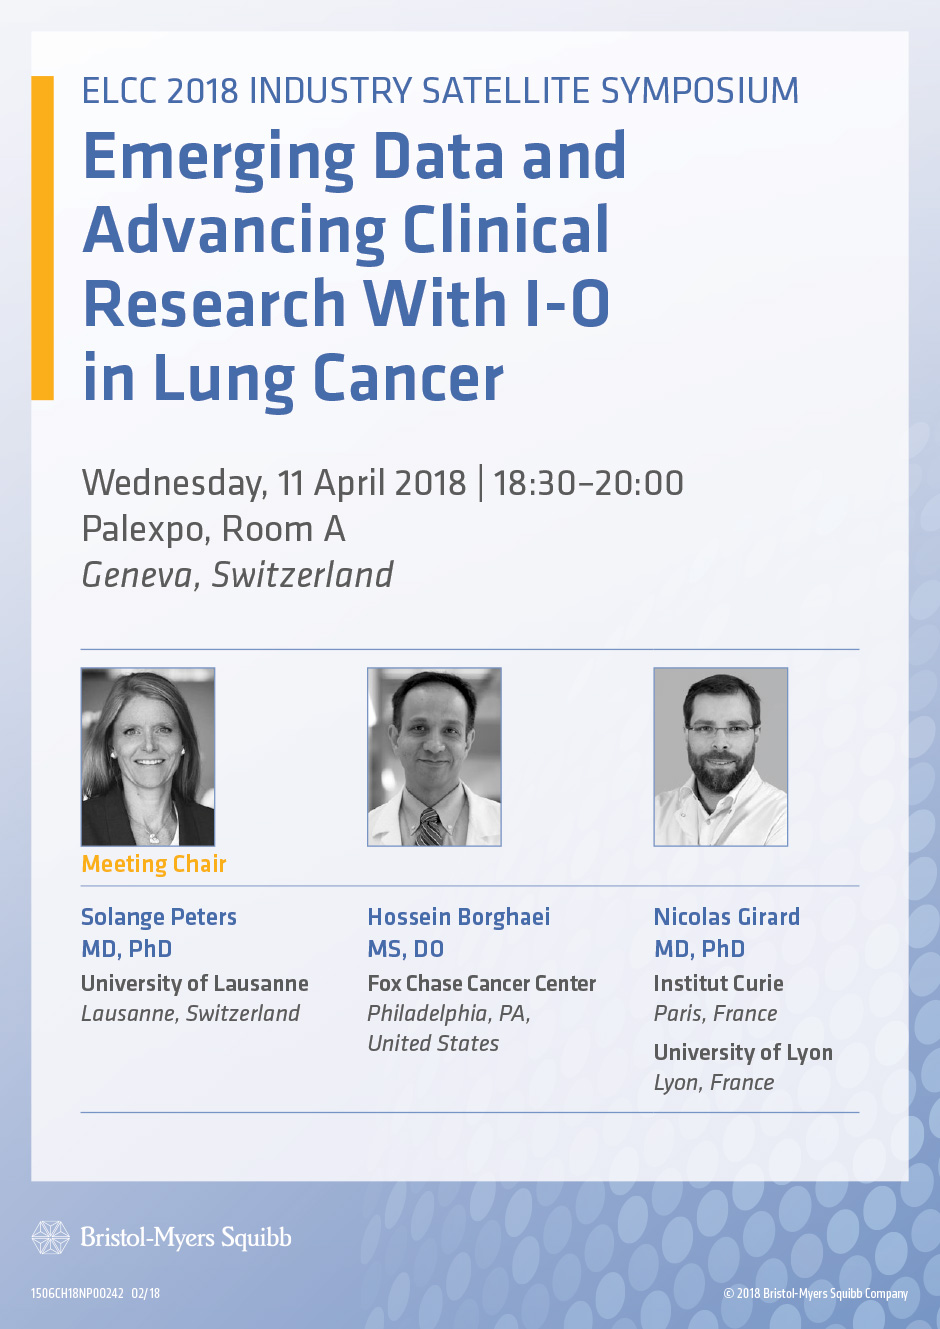 Emerging Data and Advancing Clinical Research With I-O in Lung Cancer